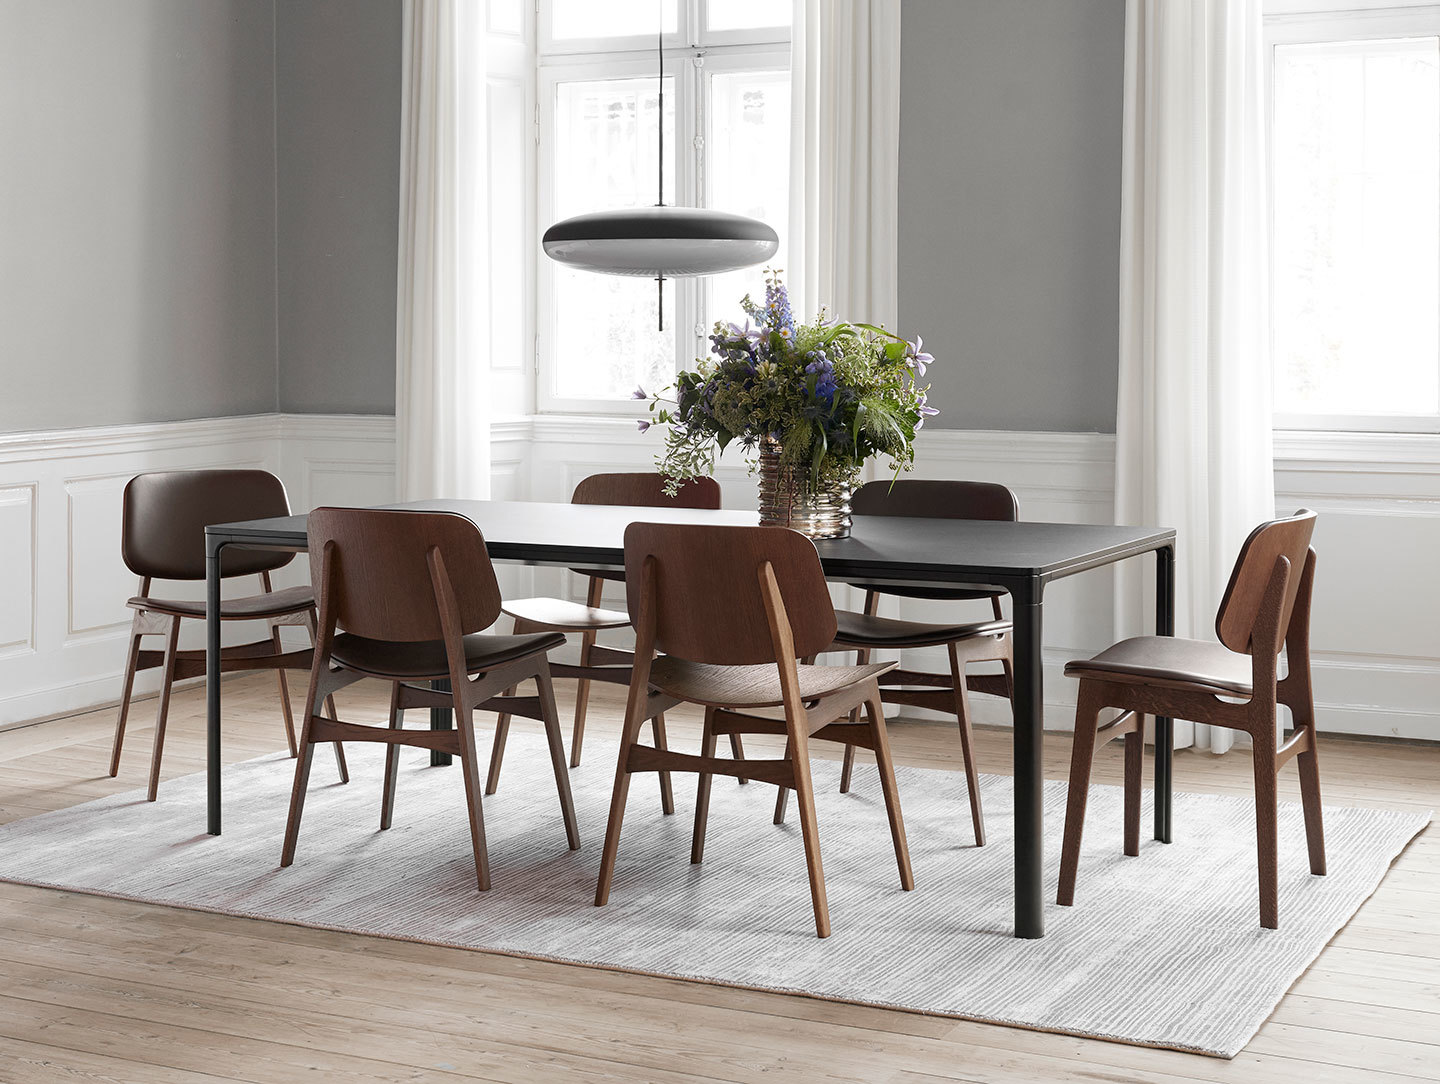 Fredericia Soborg Chairs Wood Base Borge Mogensen